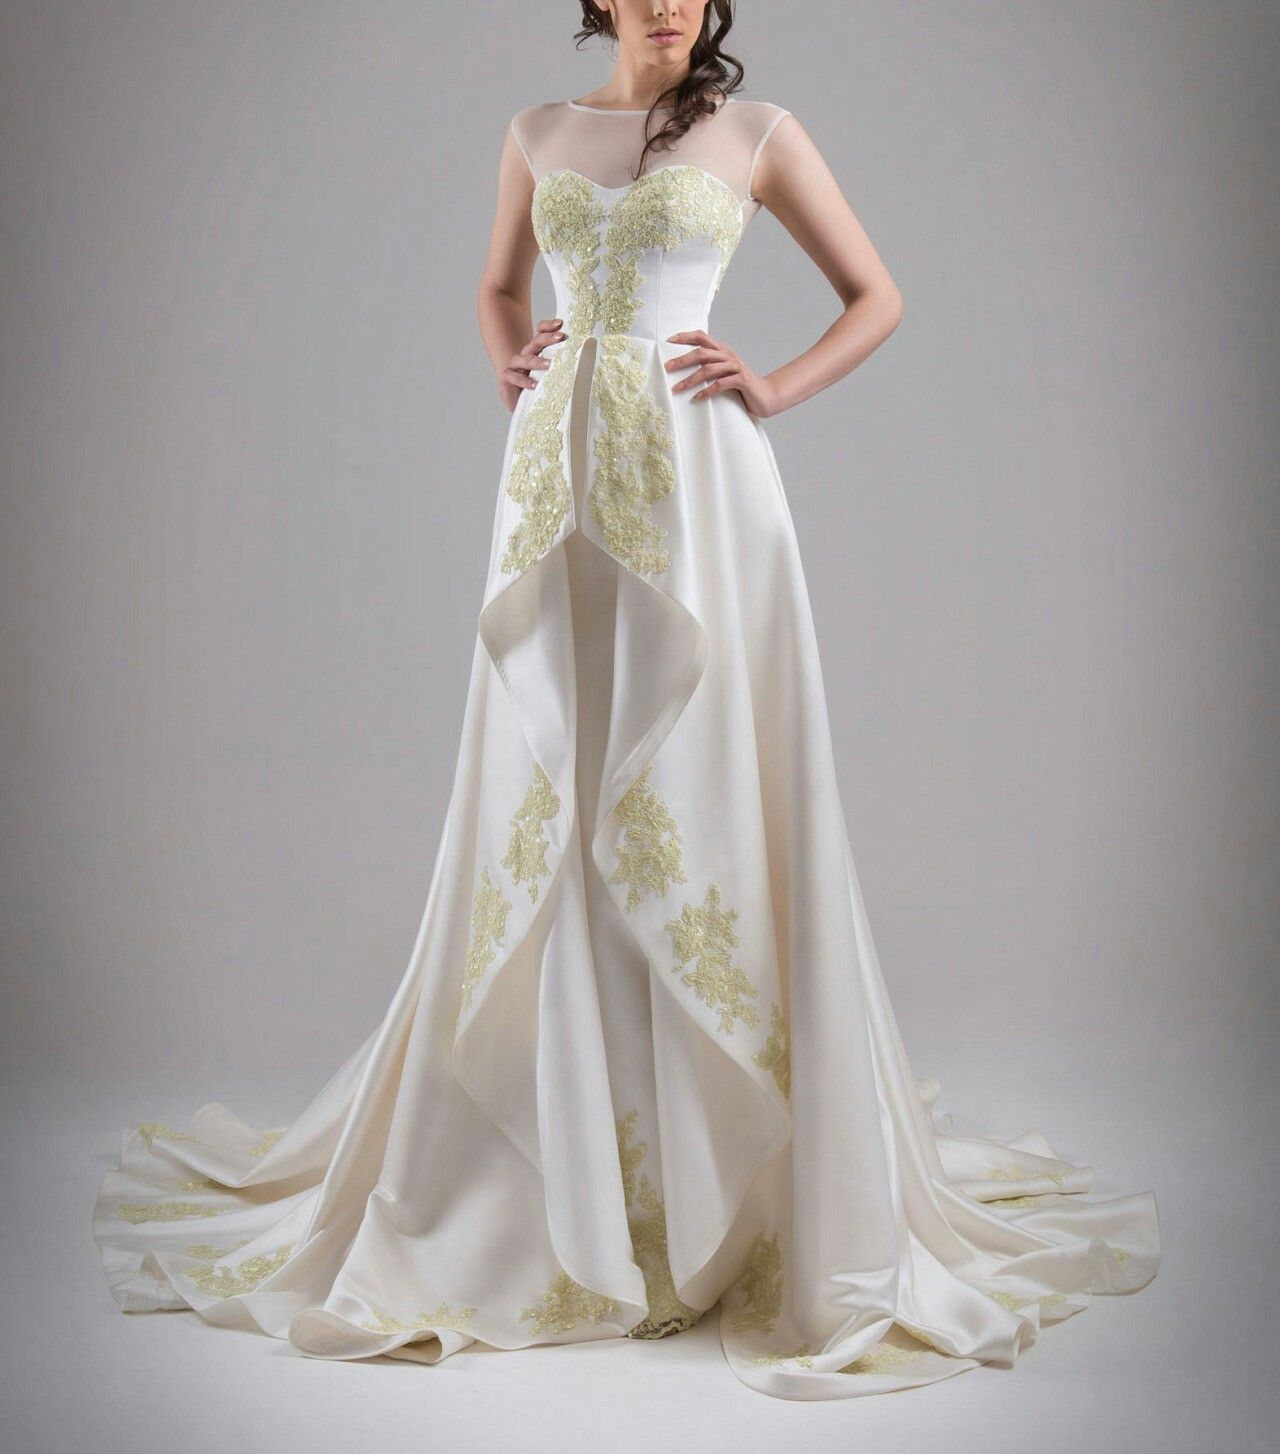 What Margaery would wear, Chrystelle Atallah